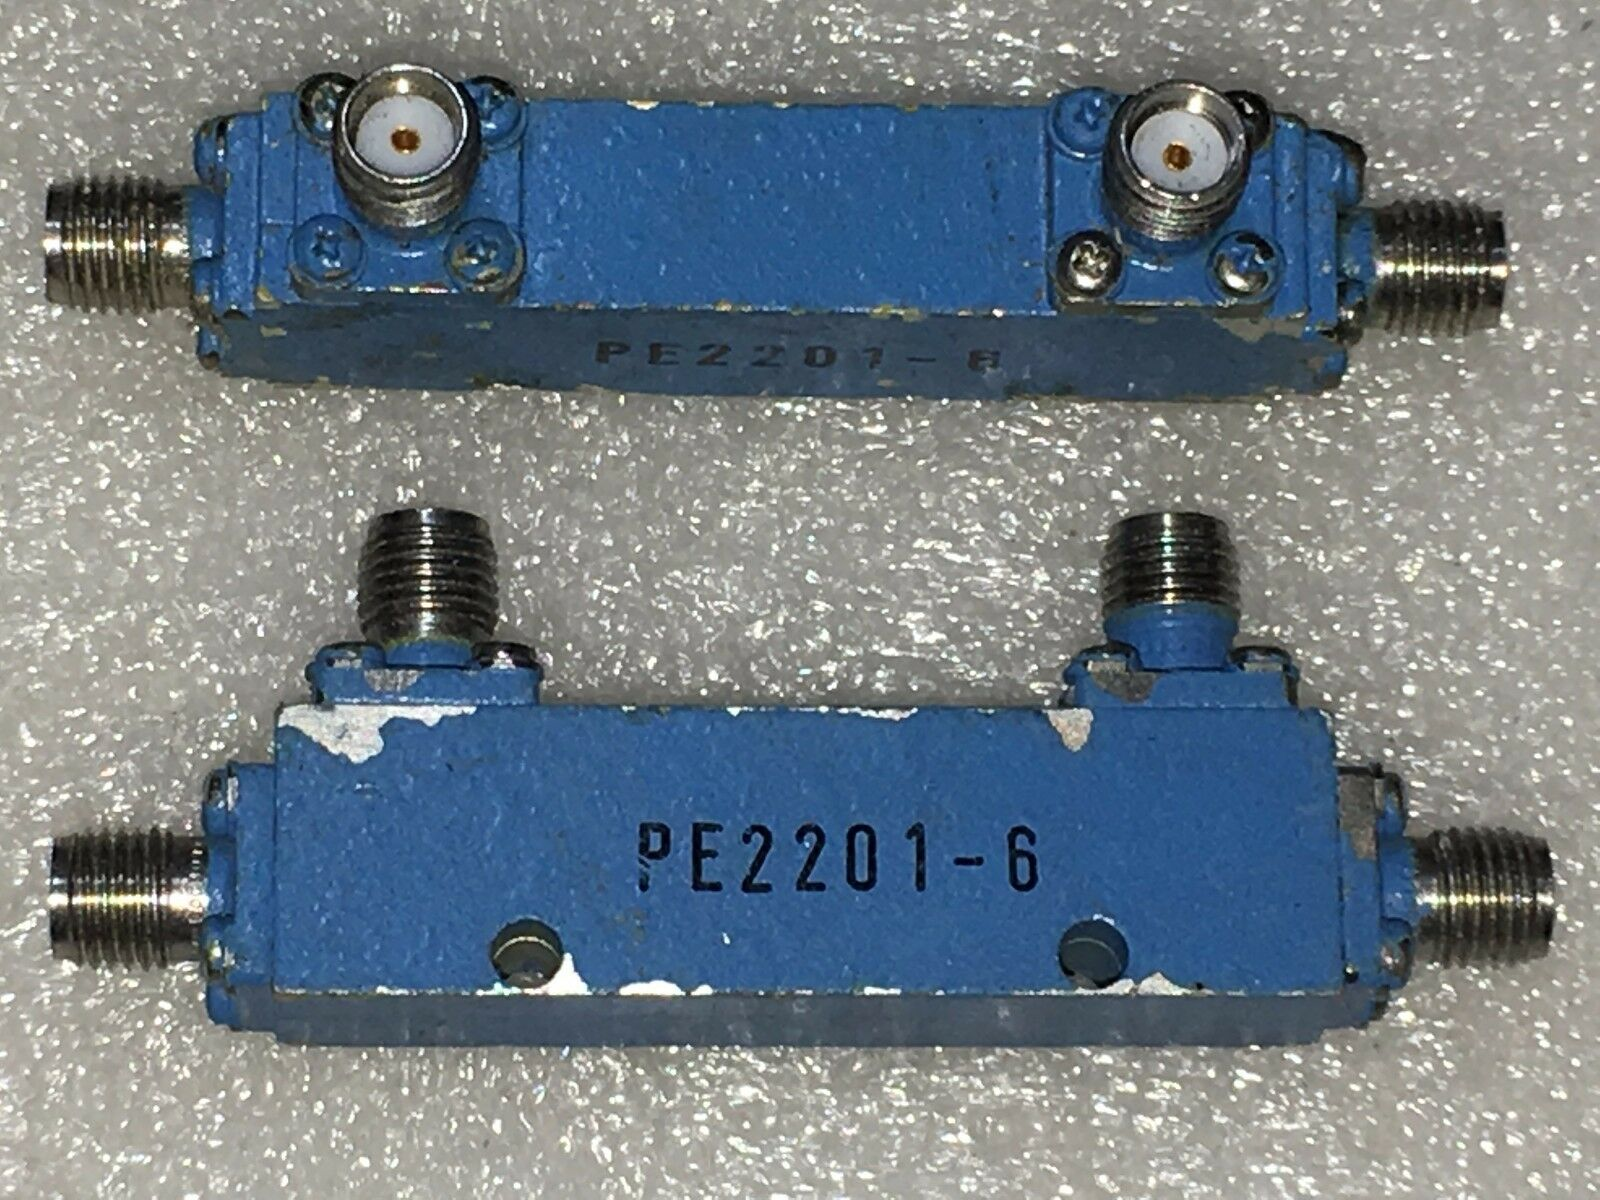 F 30 dB,50 W SMA MCLI C2-30 1 to 2 GHz Miniature Directional Coupler.Tested!